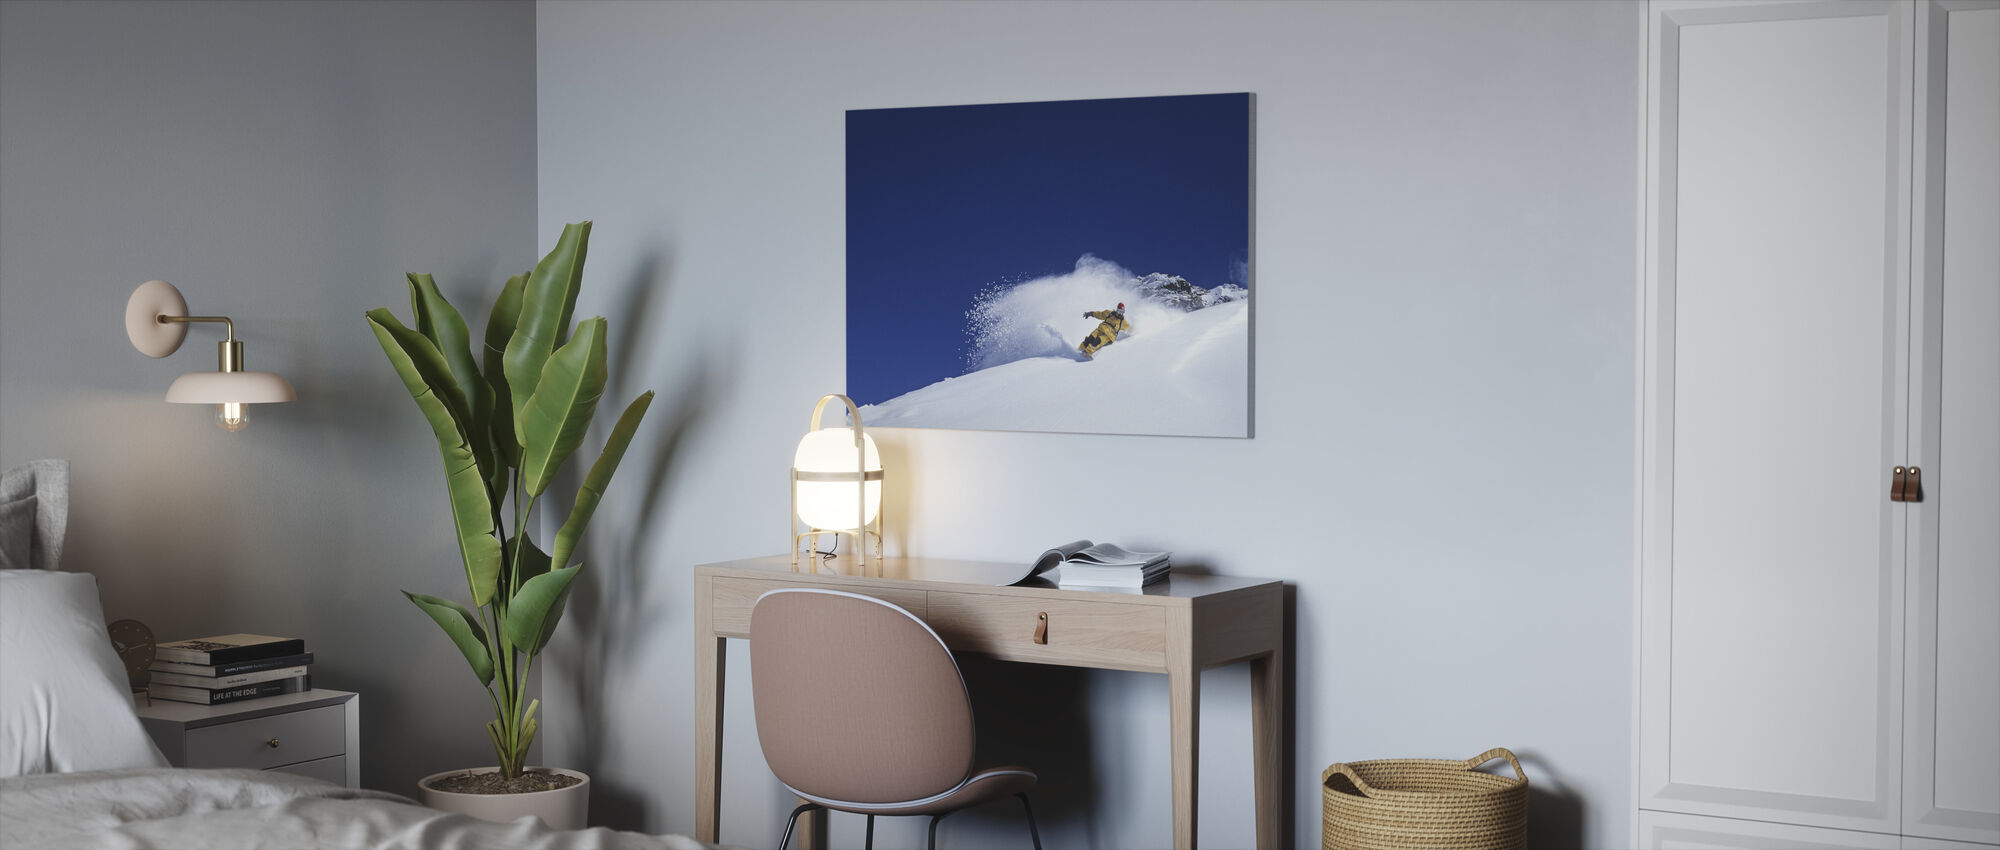 Powder Dreaming - Canvas print - Office